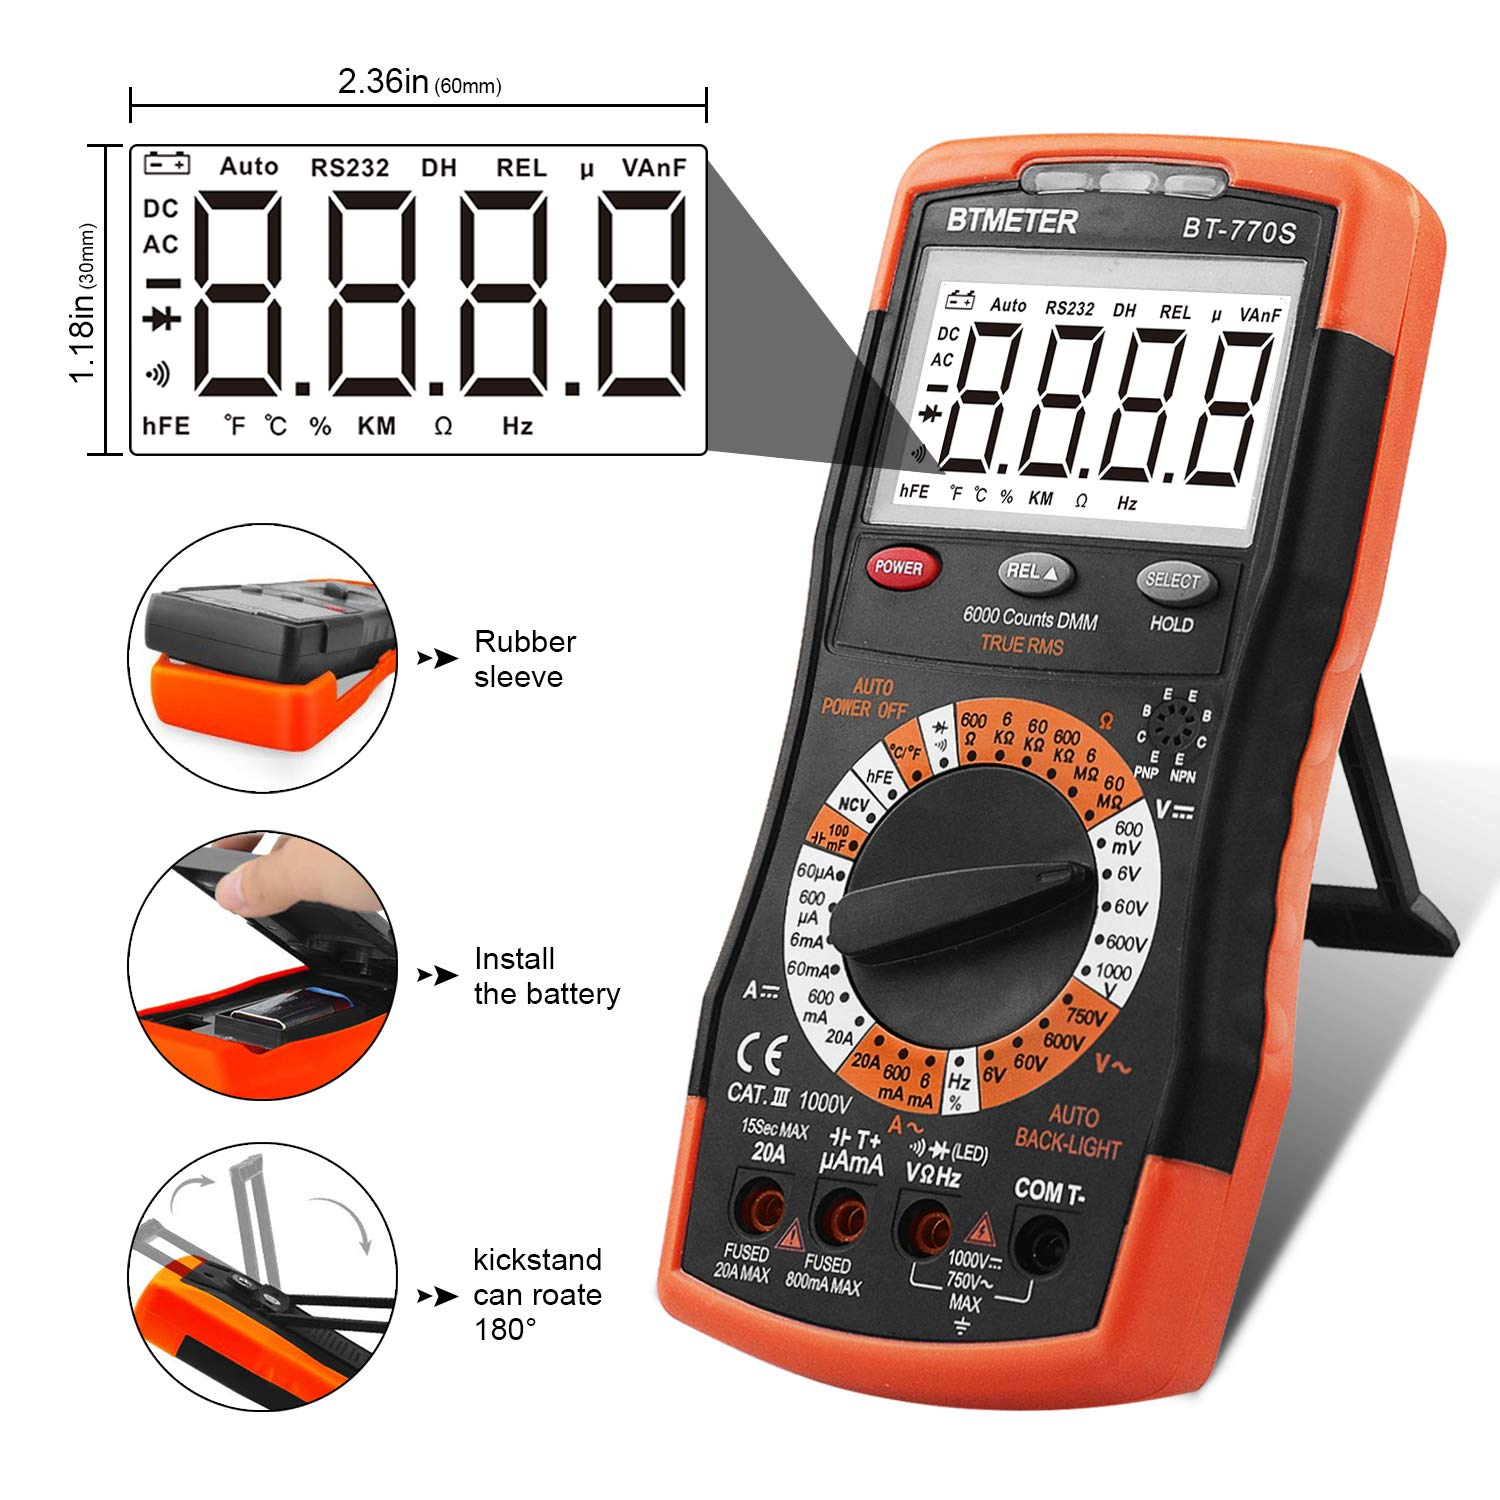 BTMETER BT-770S Multimeter Manual Ranging Electric Meter, for AC DC Volt Amp Ohm Capacitance Frequency with Continuity Tester, Auto Backlit for Automotive Hobbyist Electrical Home